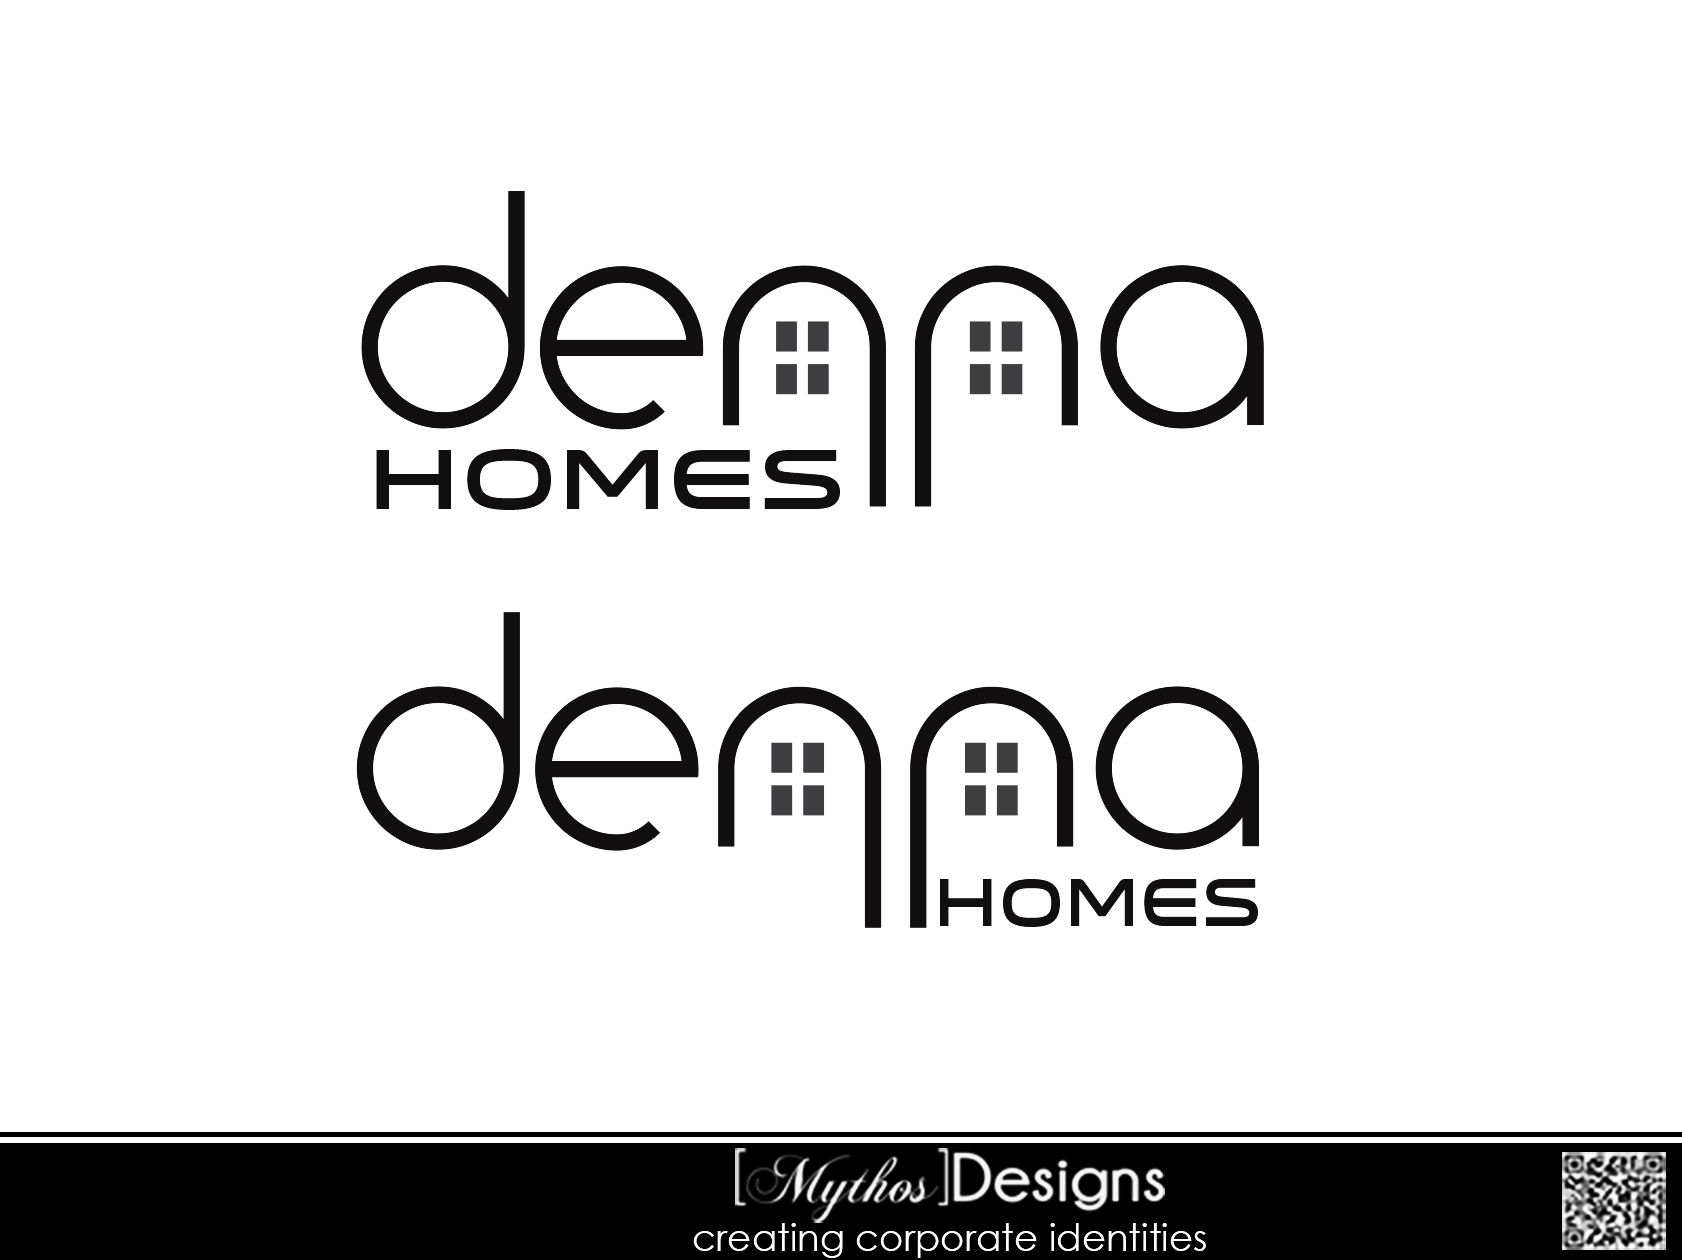 Logo Design by Mythos Designs - Entry No. 277 in the Logo Design Contest Denna Group Logo Design.